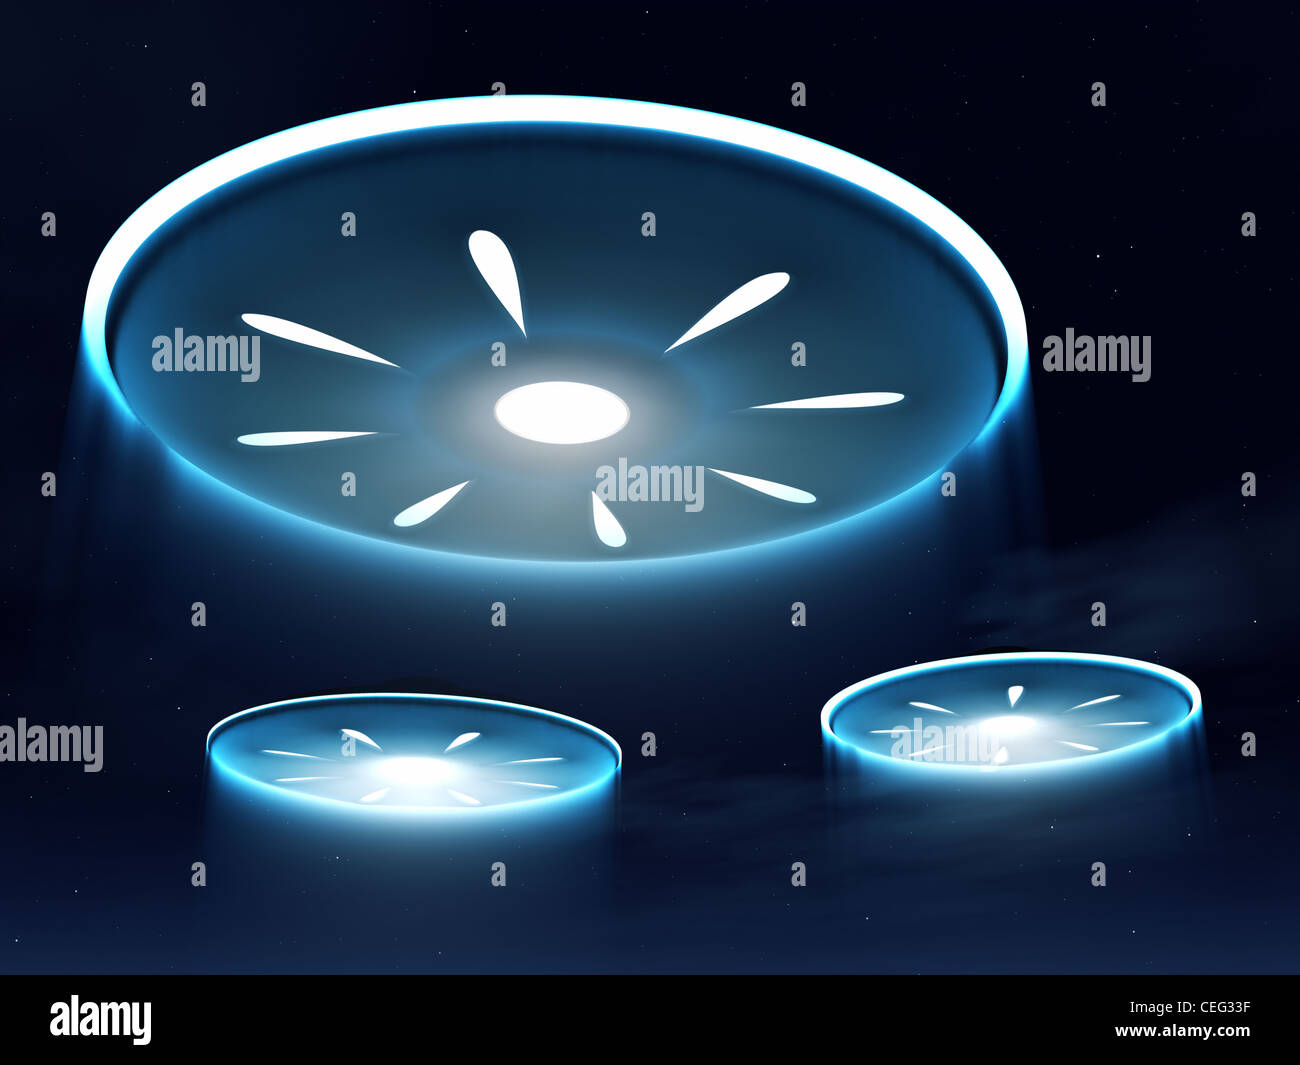 Alien Spacecraft In The Night Sky Stock Photo 43379603 Alamy